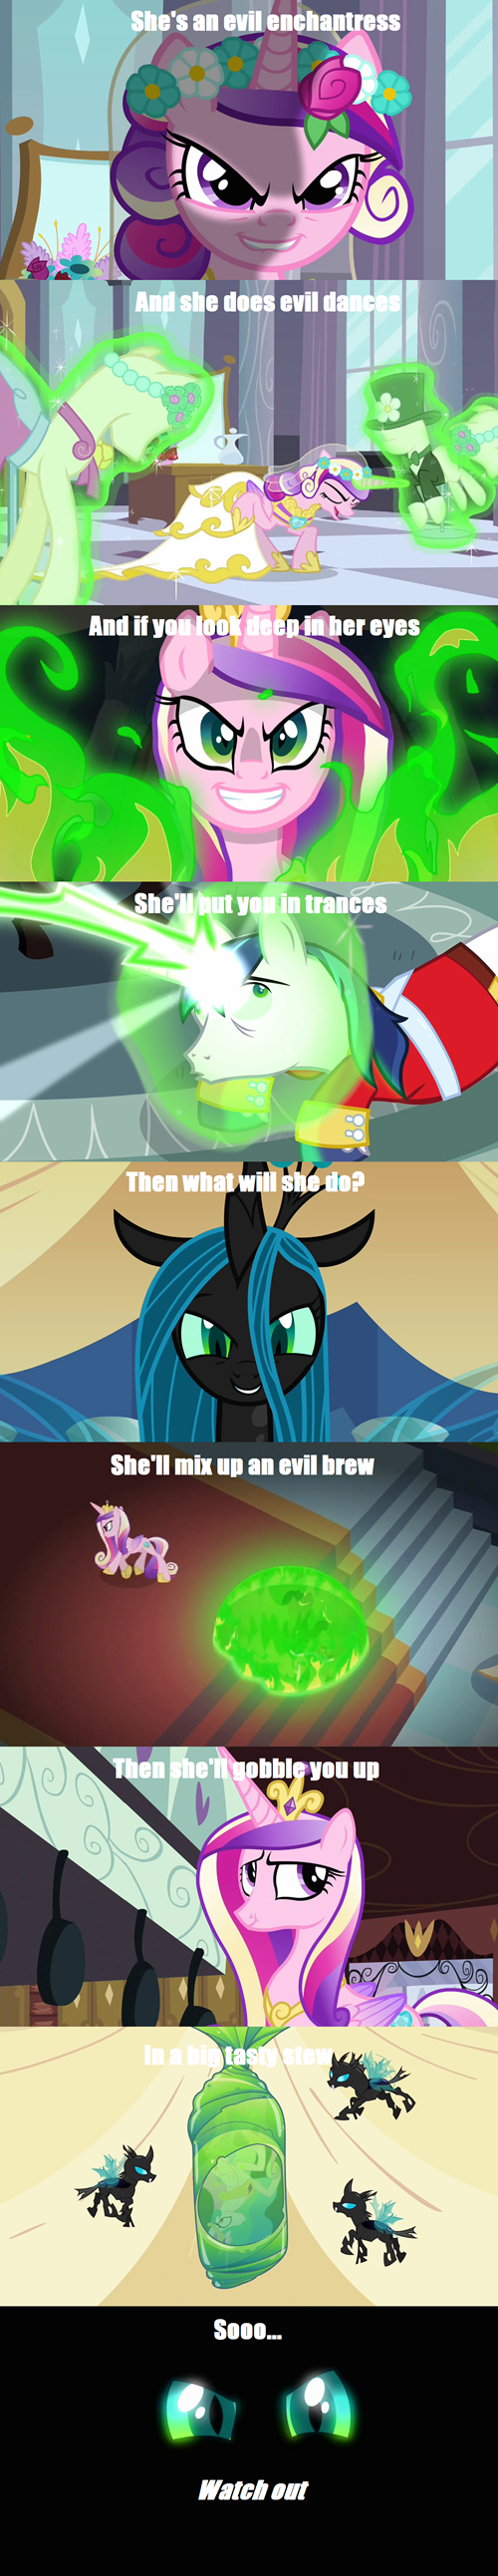 Showing Gallery For Queen Chrysalis And Shining ArmorQueen Chrysalis And Shining Armor